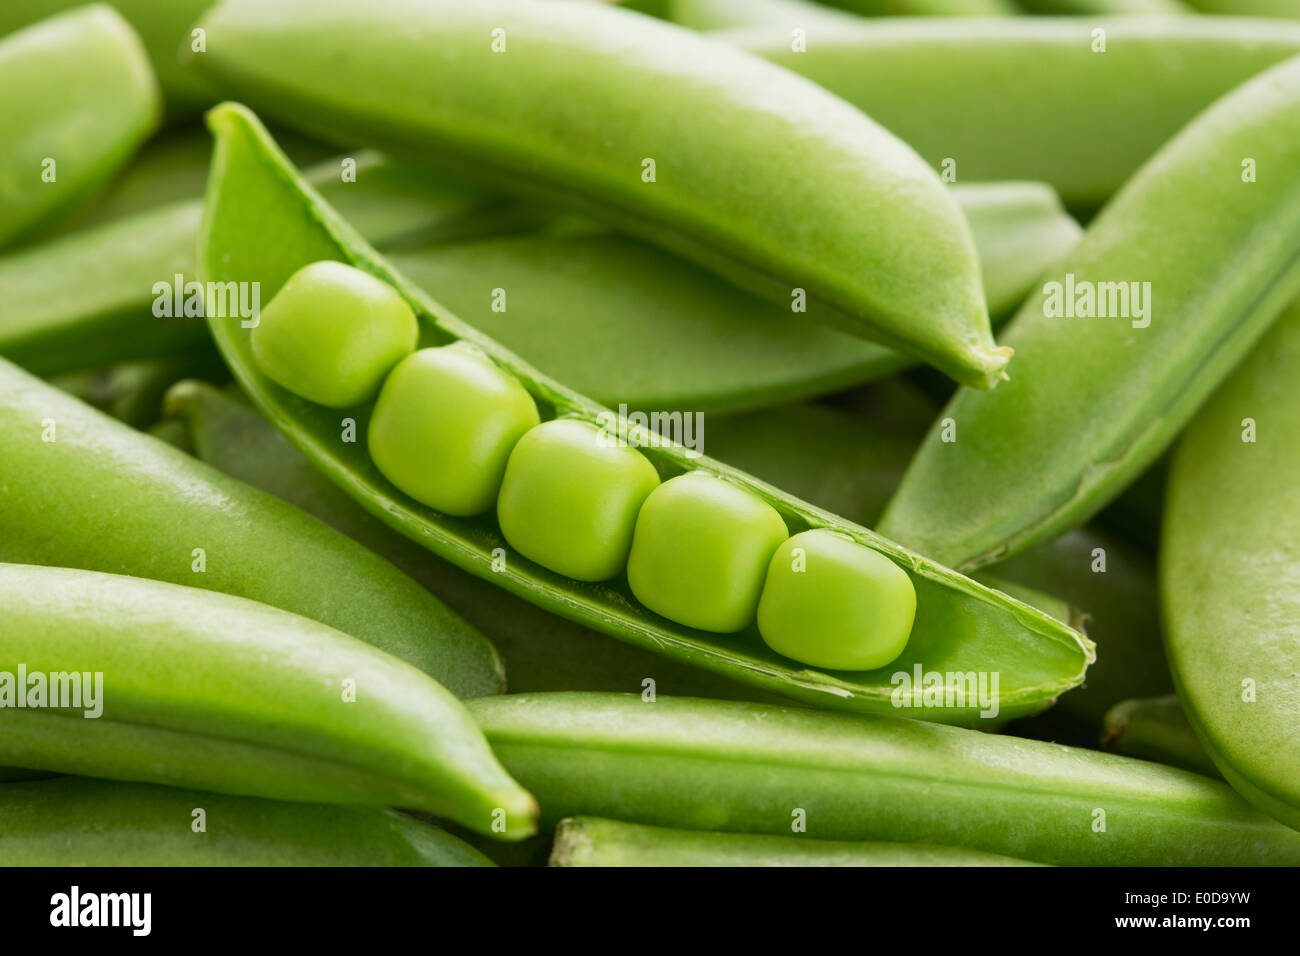 Close-up of peas in pea pod - Stock Image